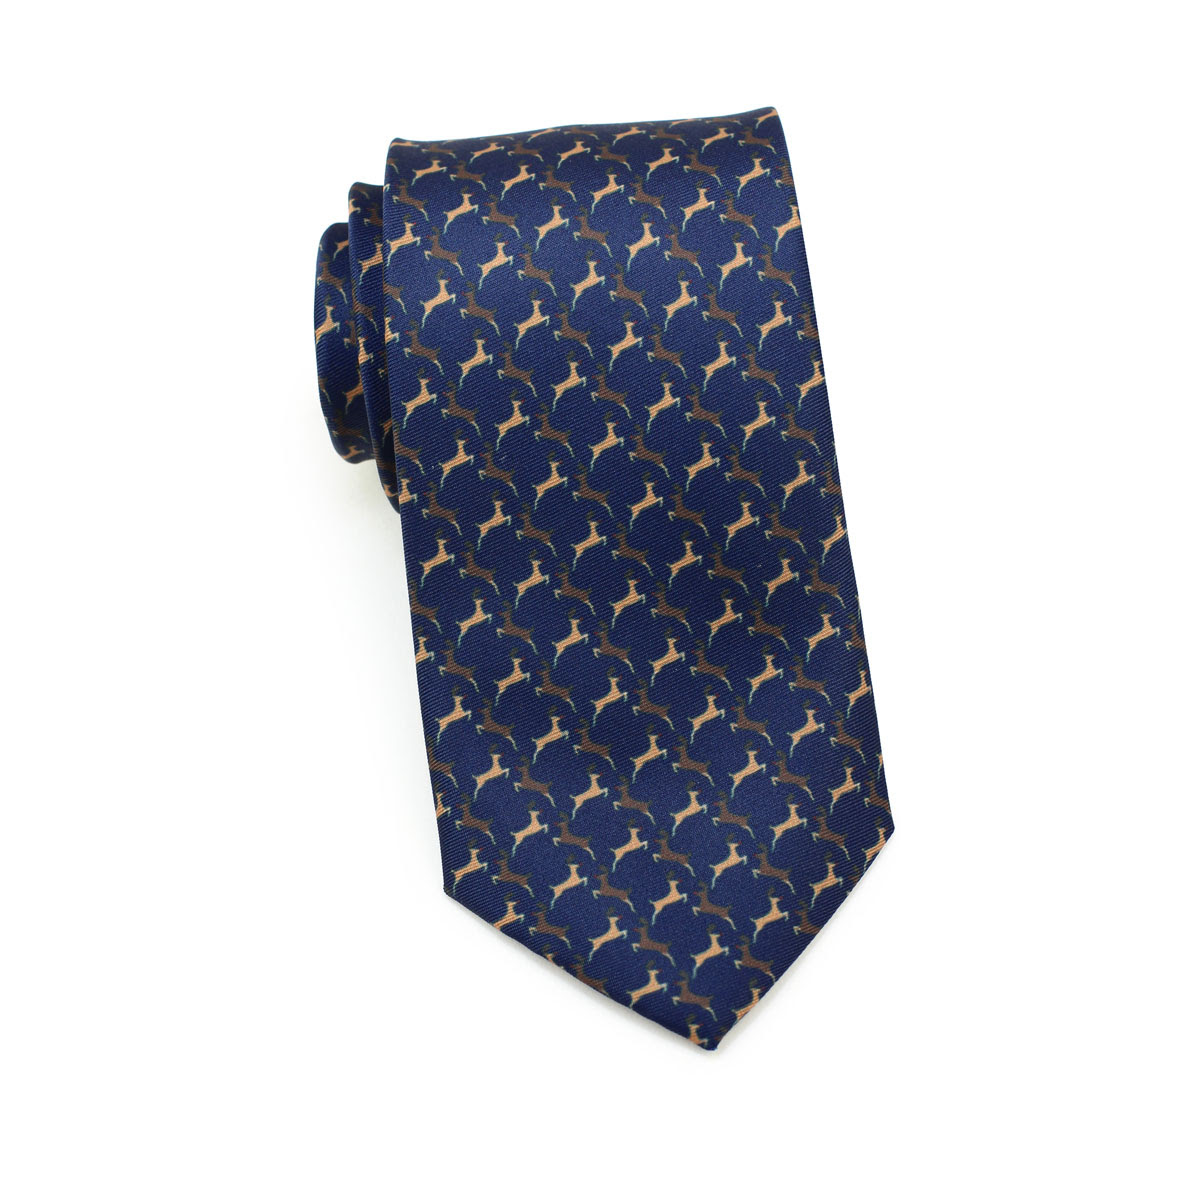 reindeer tie in navy blue